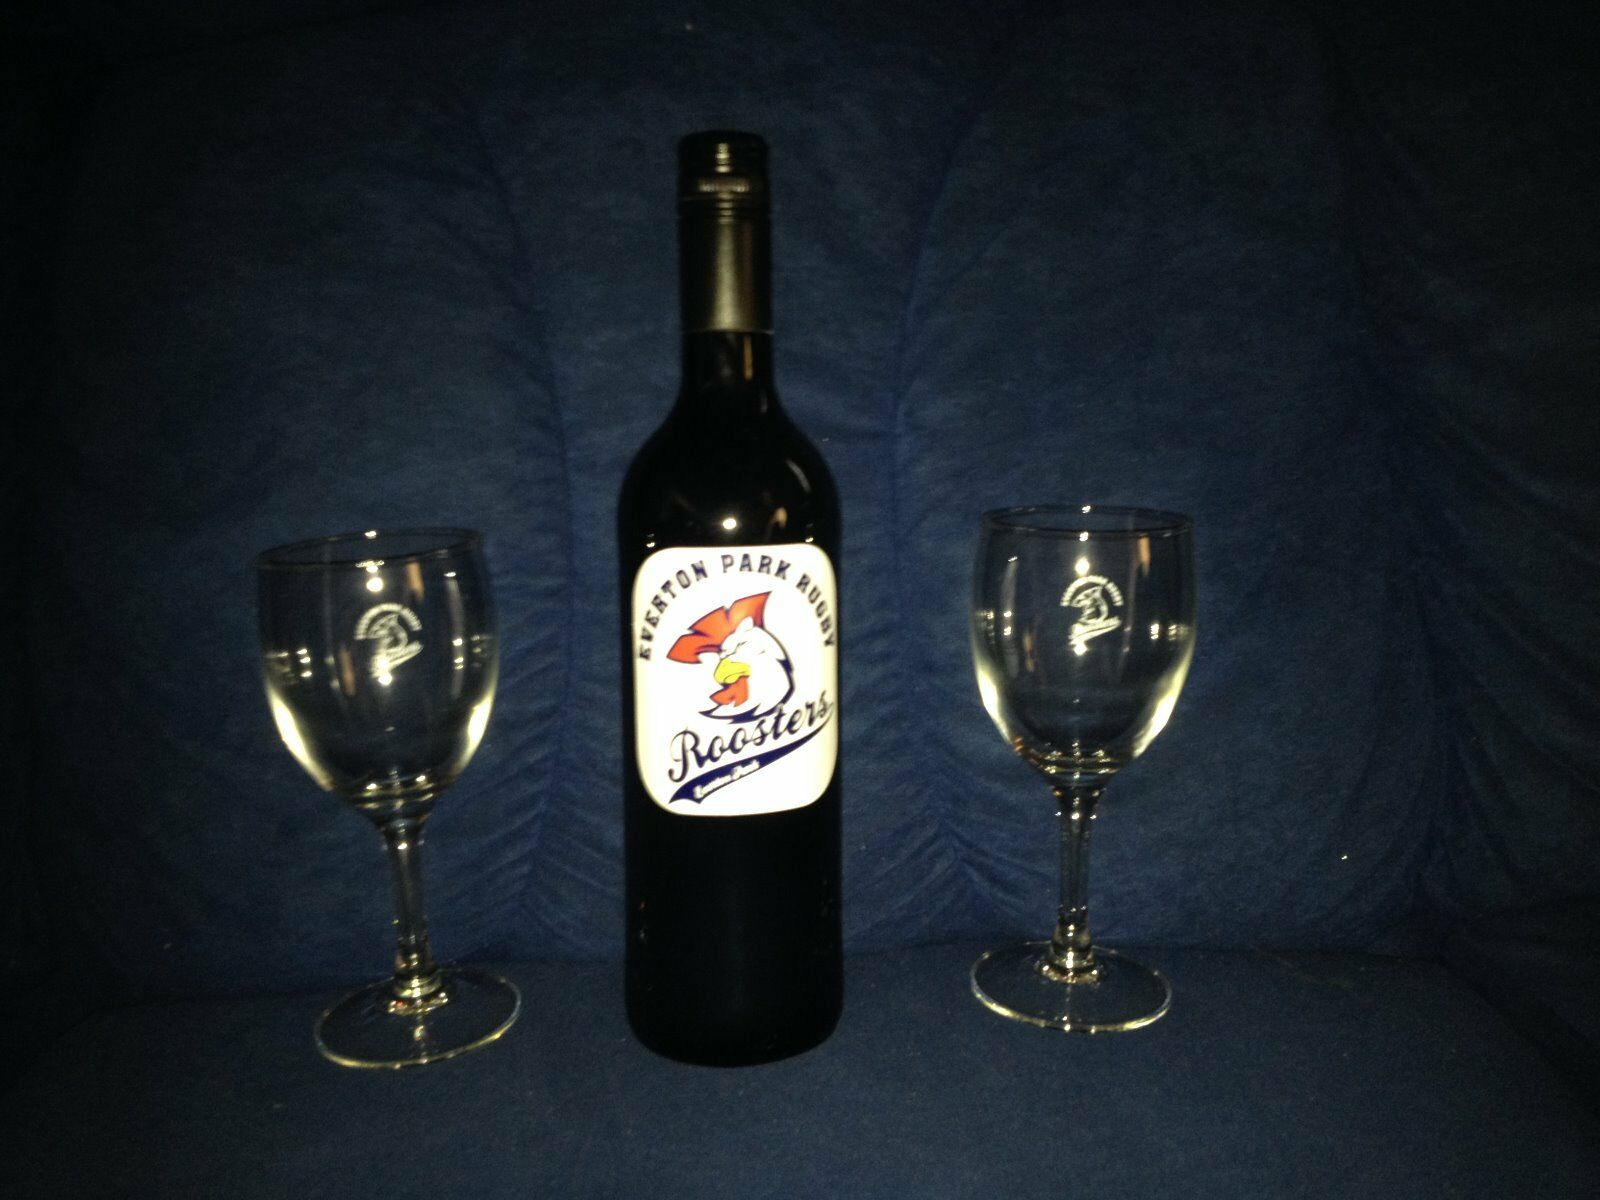 Everton Park Rugby Wine and Glasses Combo Merlot Clearance Sale